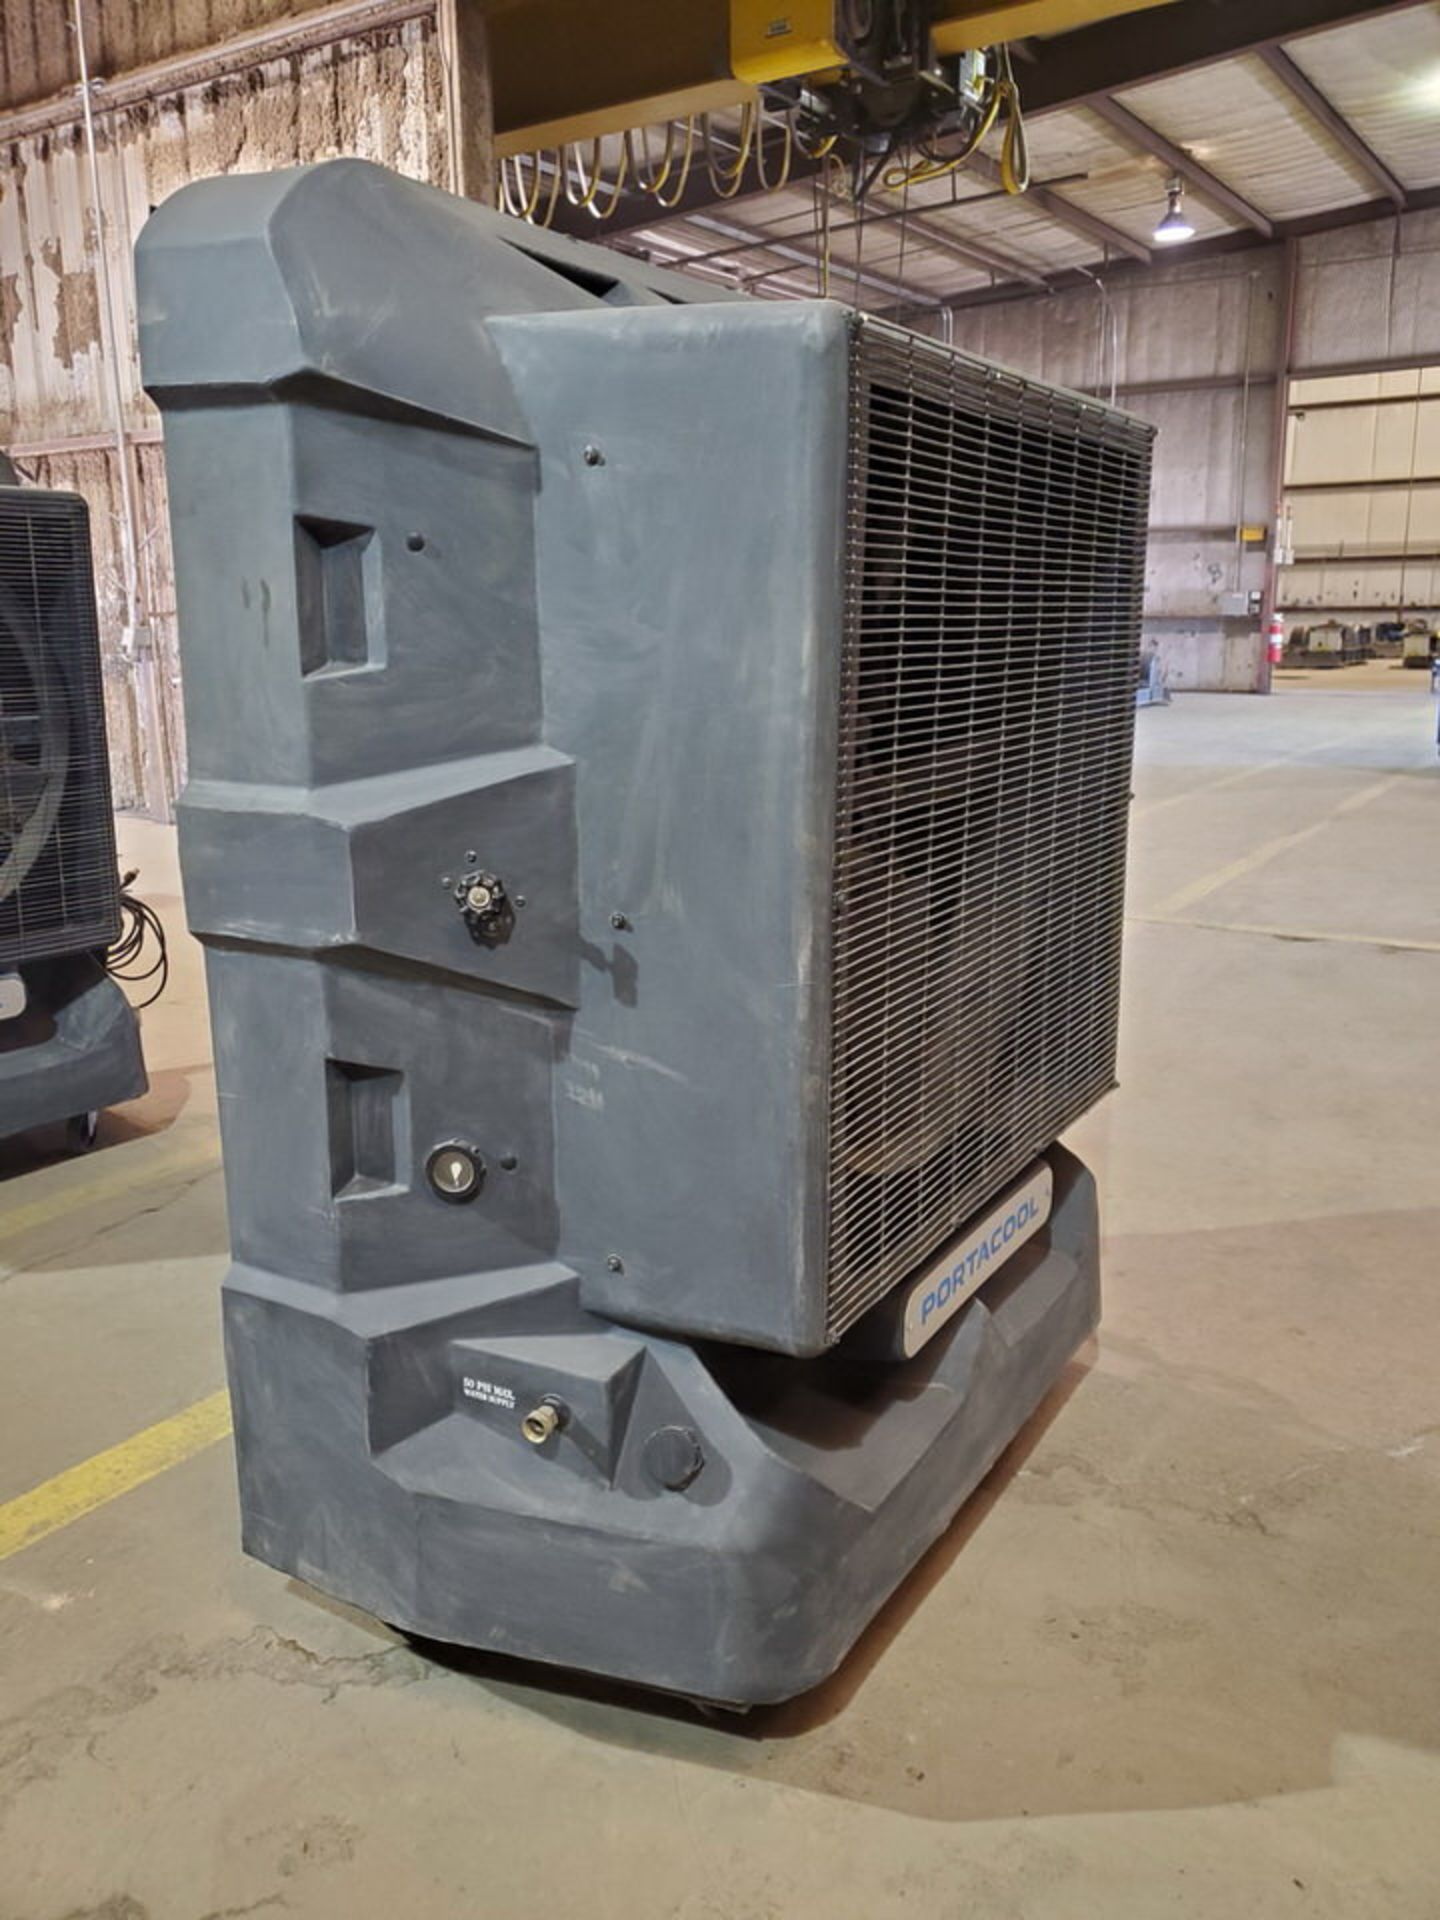 Portacool Cyclone 160 Portable Evaporative Cooler 115V, 60HZ, 7.3A - Image 3 of 7